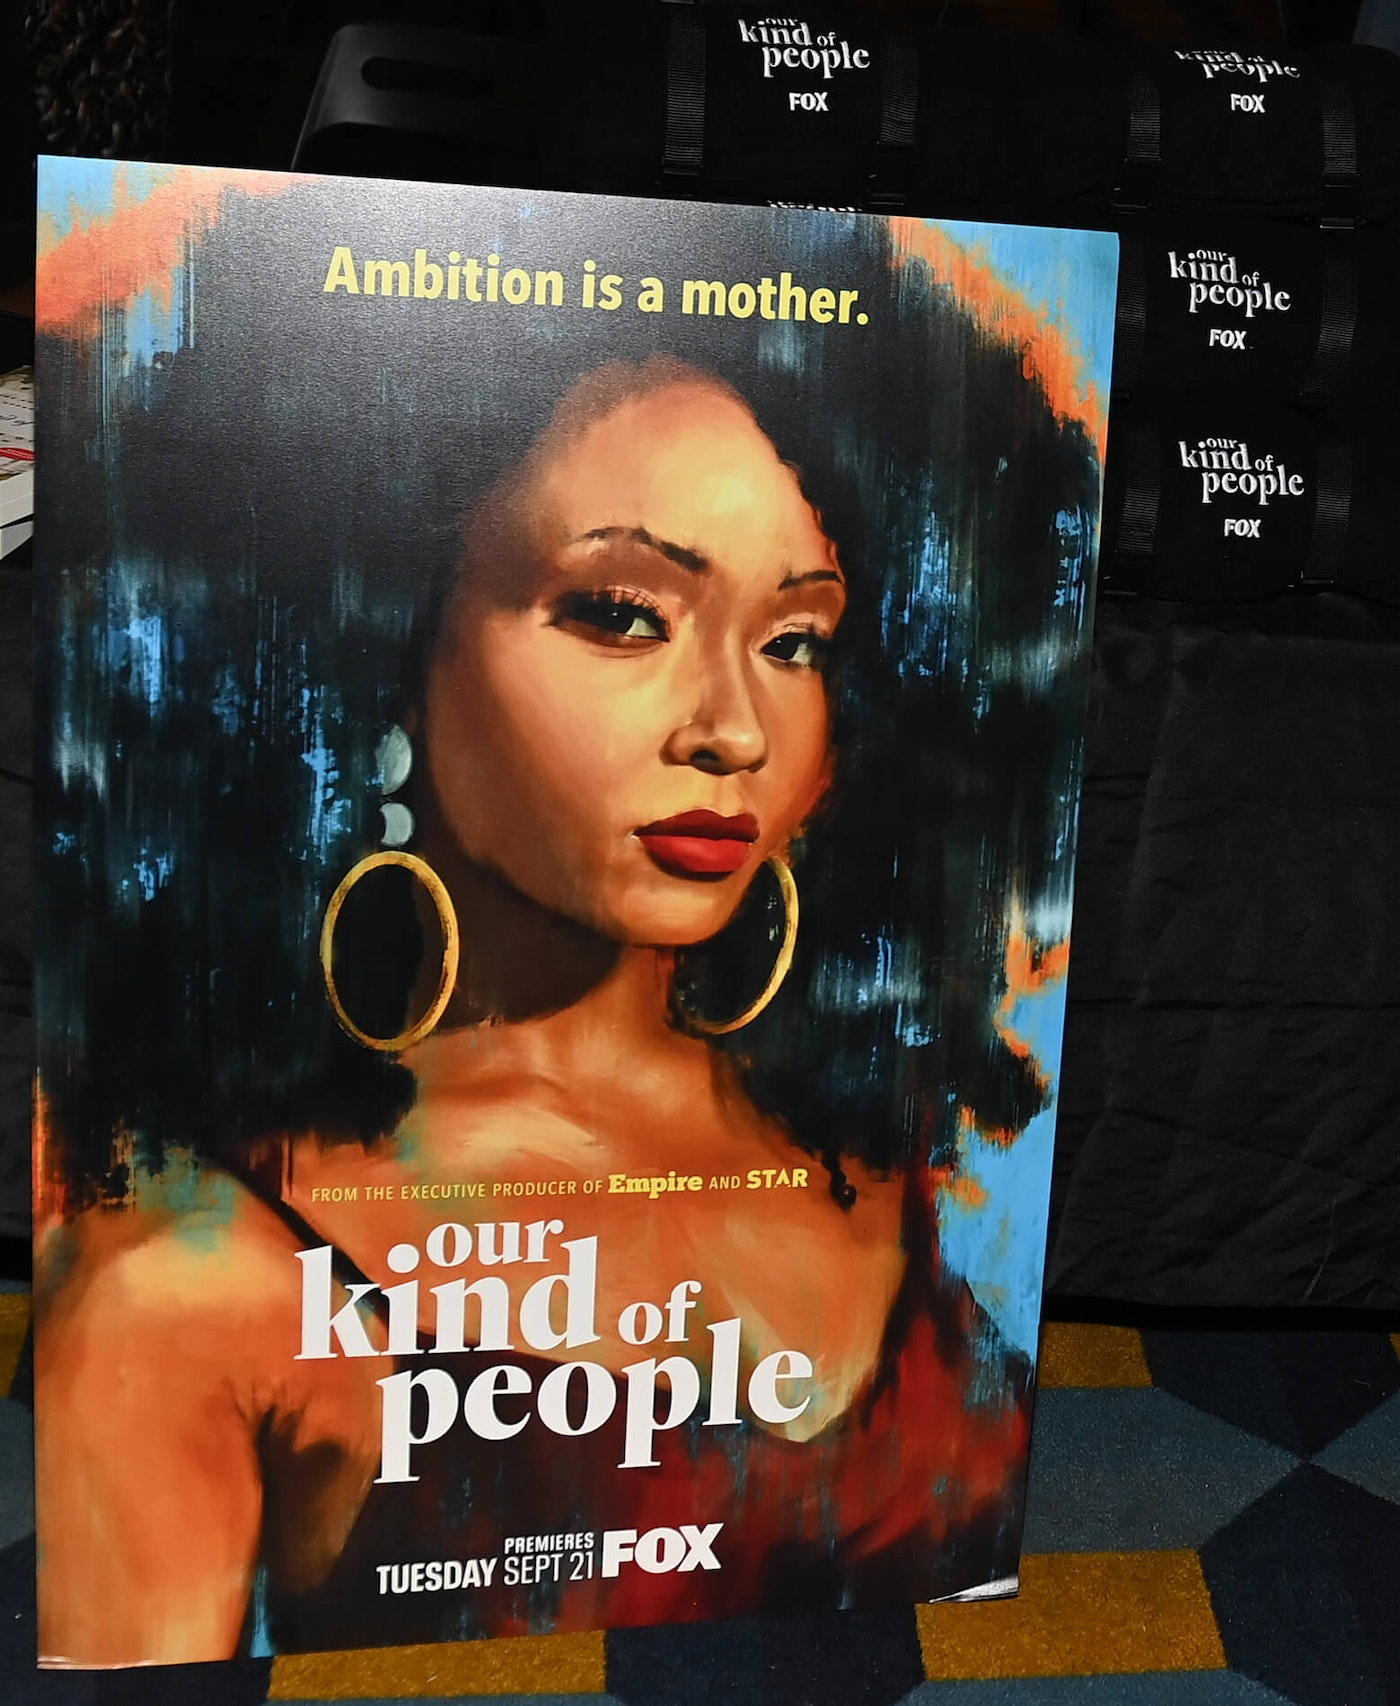 """""""Our Kind of People"""" promises intrigue, drama, and a delicious frisson between the classes. The title refers to the book """"Our Kind of People: Inside America's Black Upper Class,"""" by Lawrence Otis Graham. When it debuted in 1999, the book pulled the curtain back on the insular society of old, African-American, monied families and their privileges – as numerous as their rules about who could belong and who couldn't. (Photo by Paras Griffin/Getty Images for FOX)"""